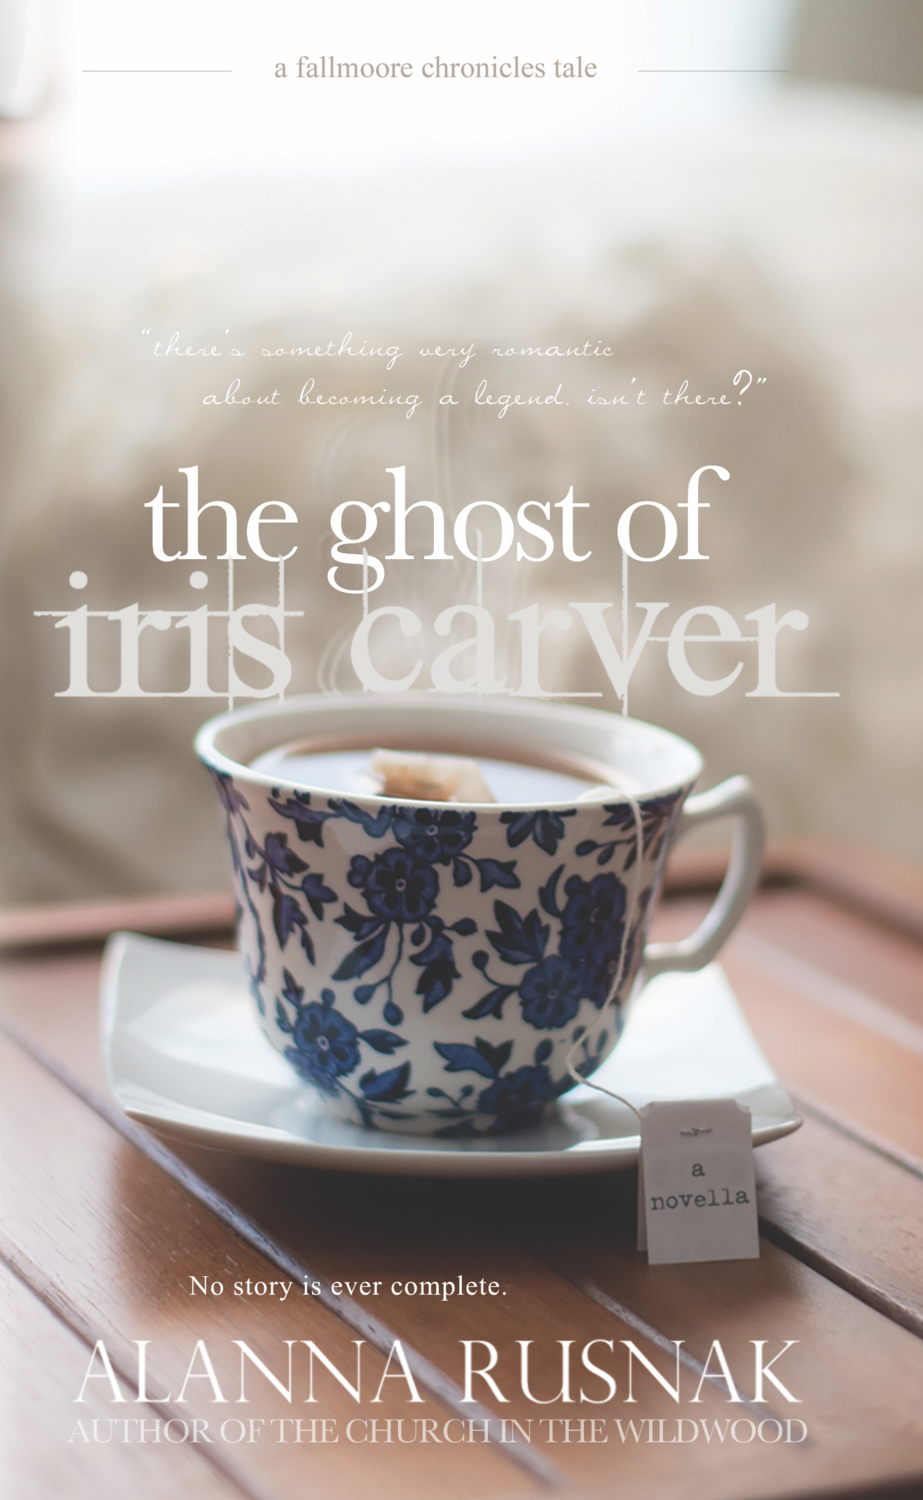 The Ghost of Iris Carver